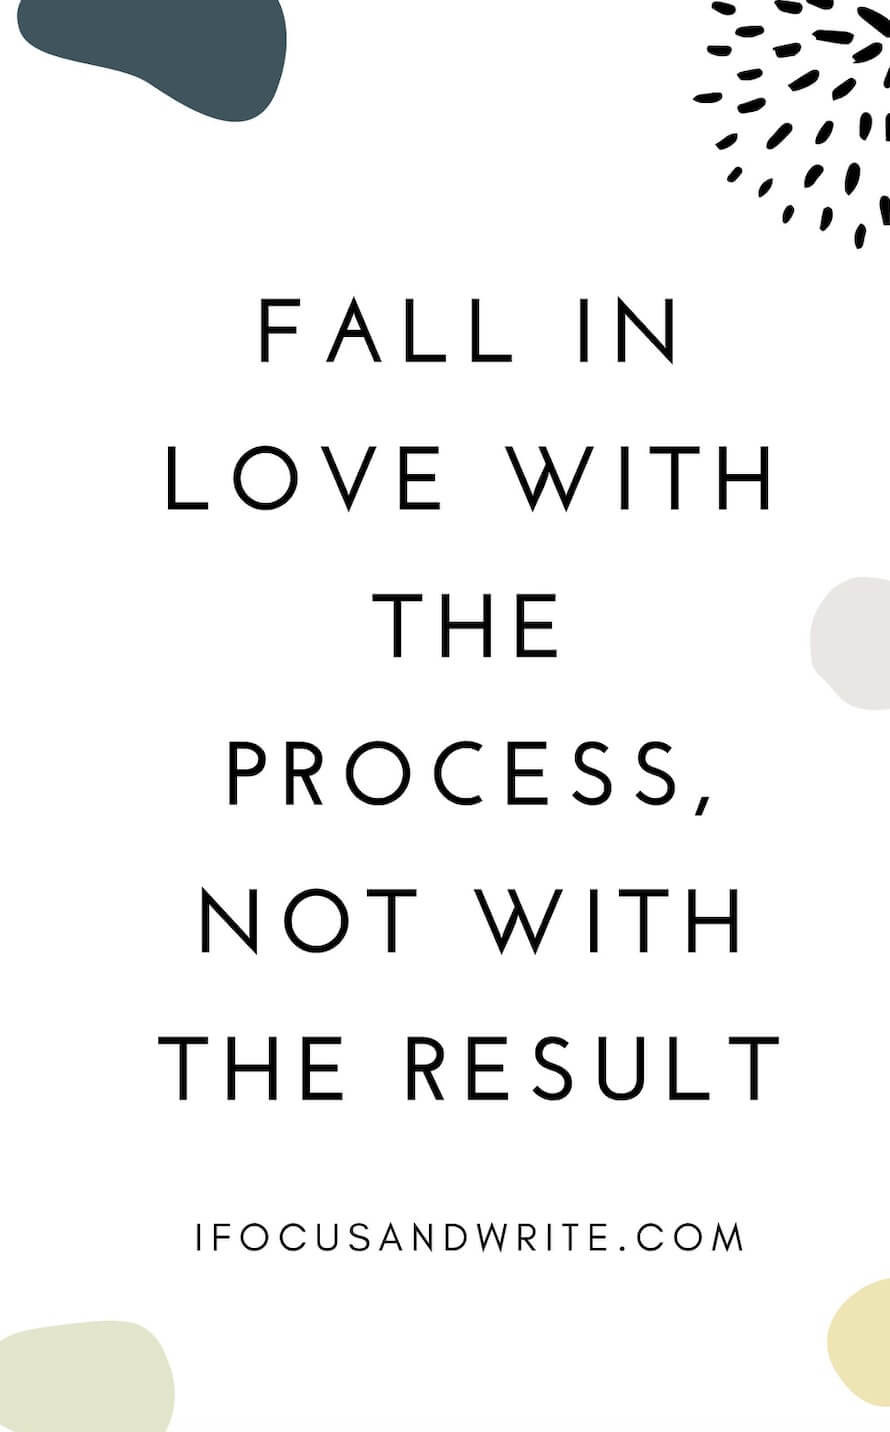 To stay motivated, remember: fall in the love with the process, not with the result!